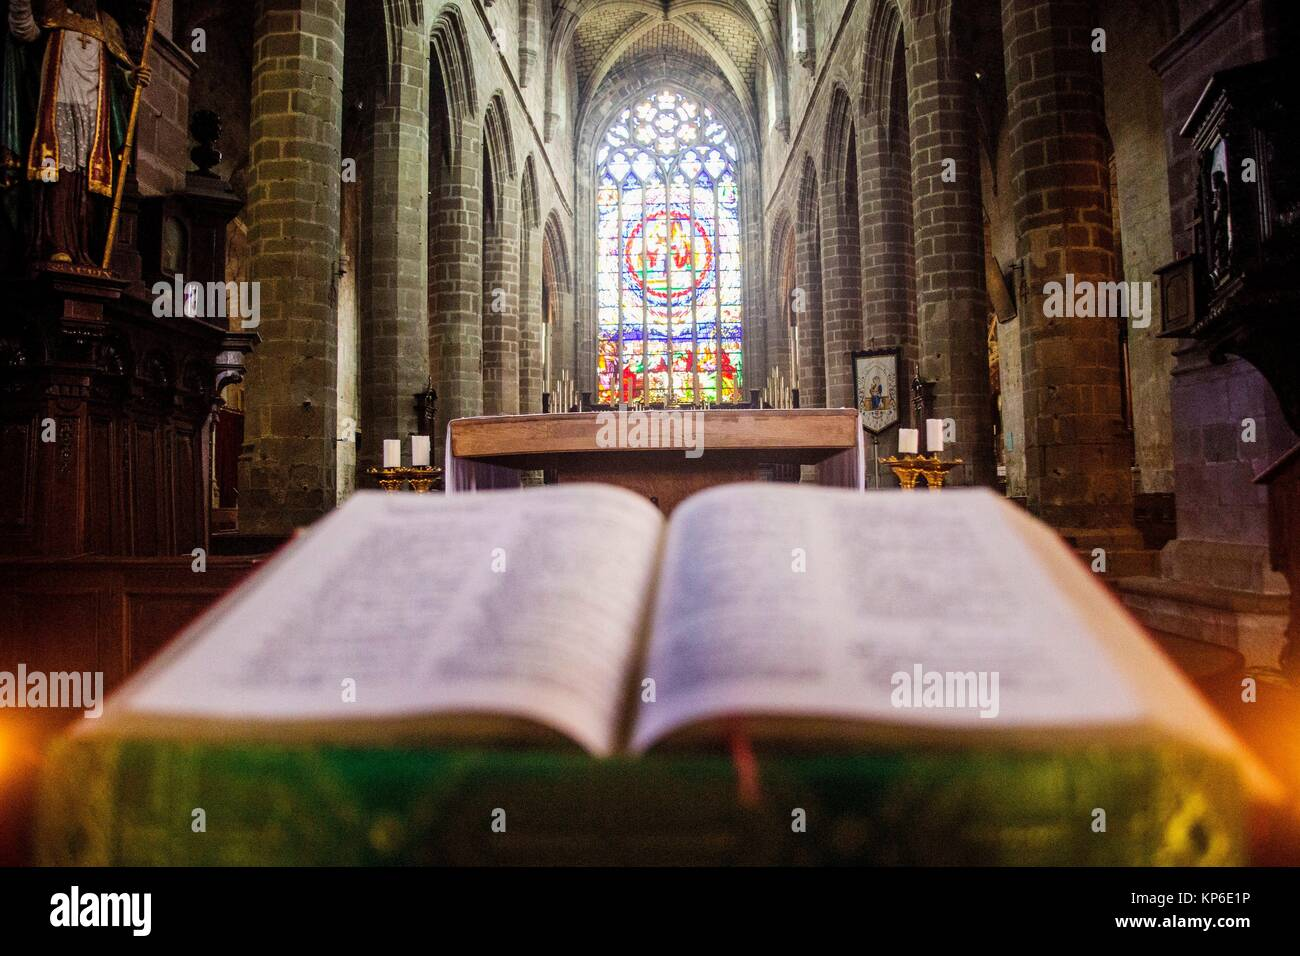 View from the pulpit where the priest, preacher or minister preaches and reads his bible. From view close up of - Stock Image